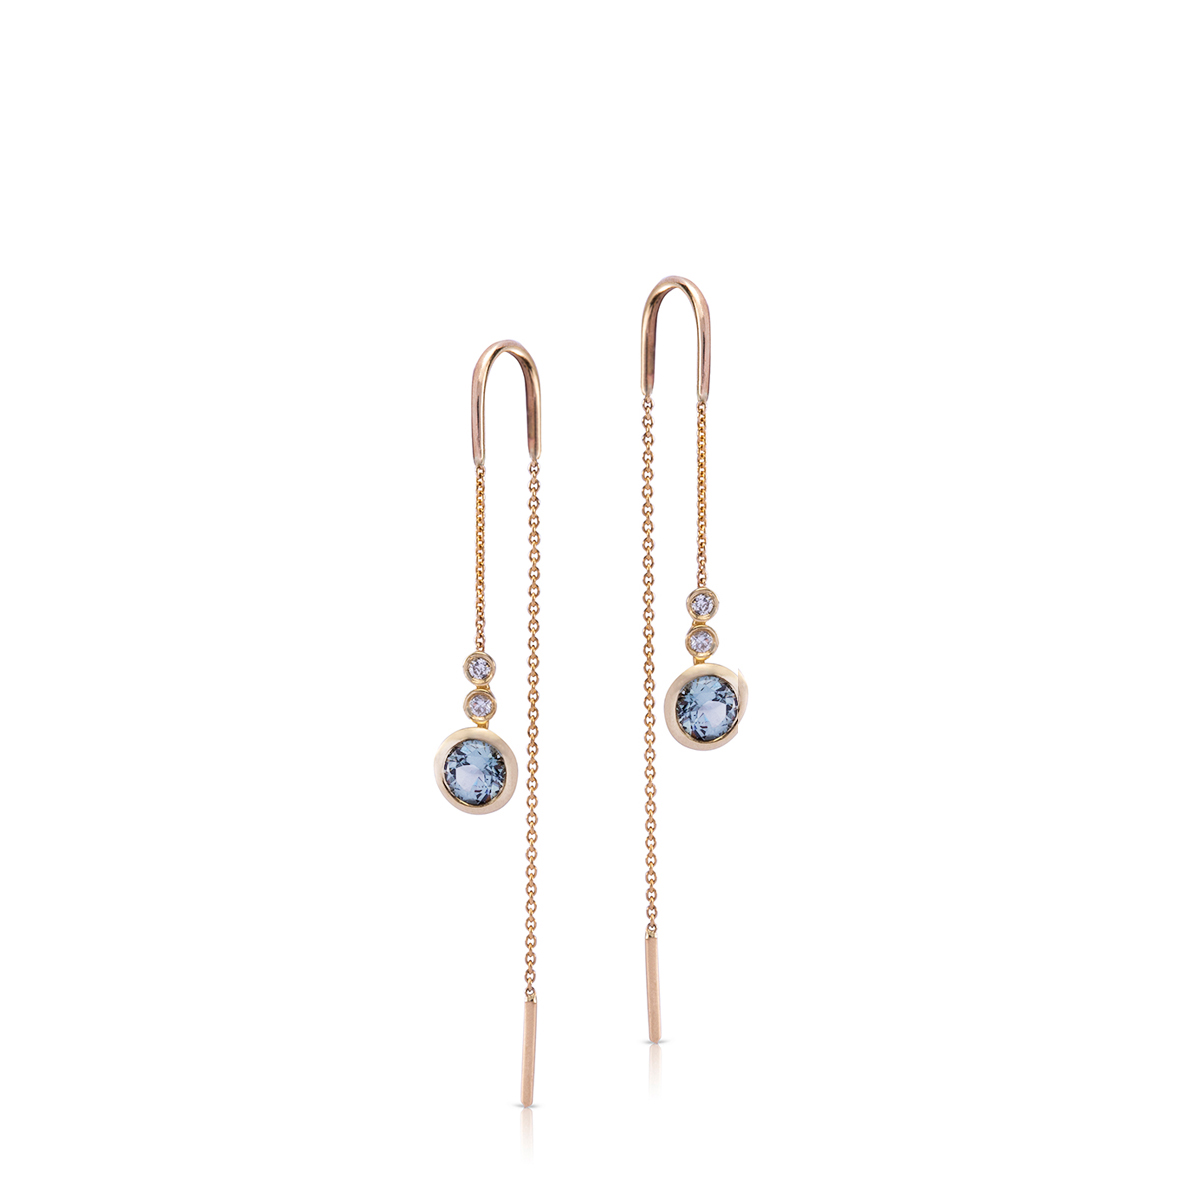 Spinel and diamond gold chain earrings